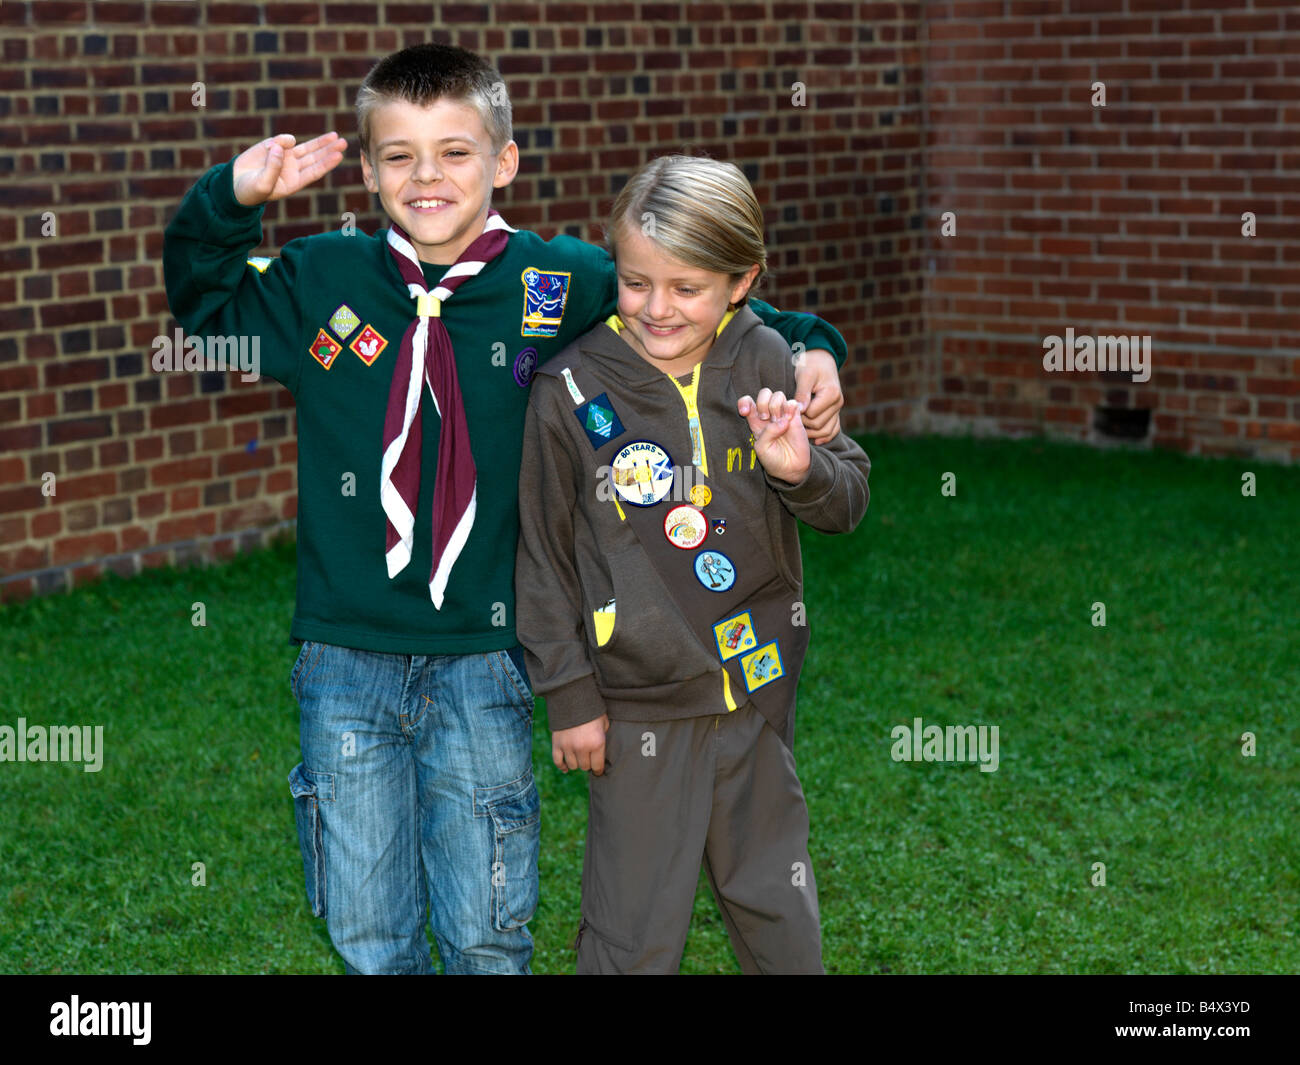 Cub and Brownie with Badges - Stock Image